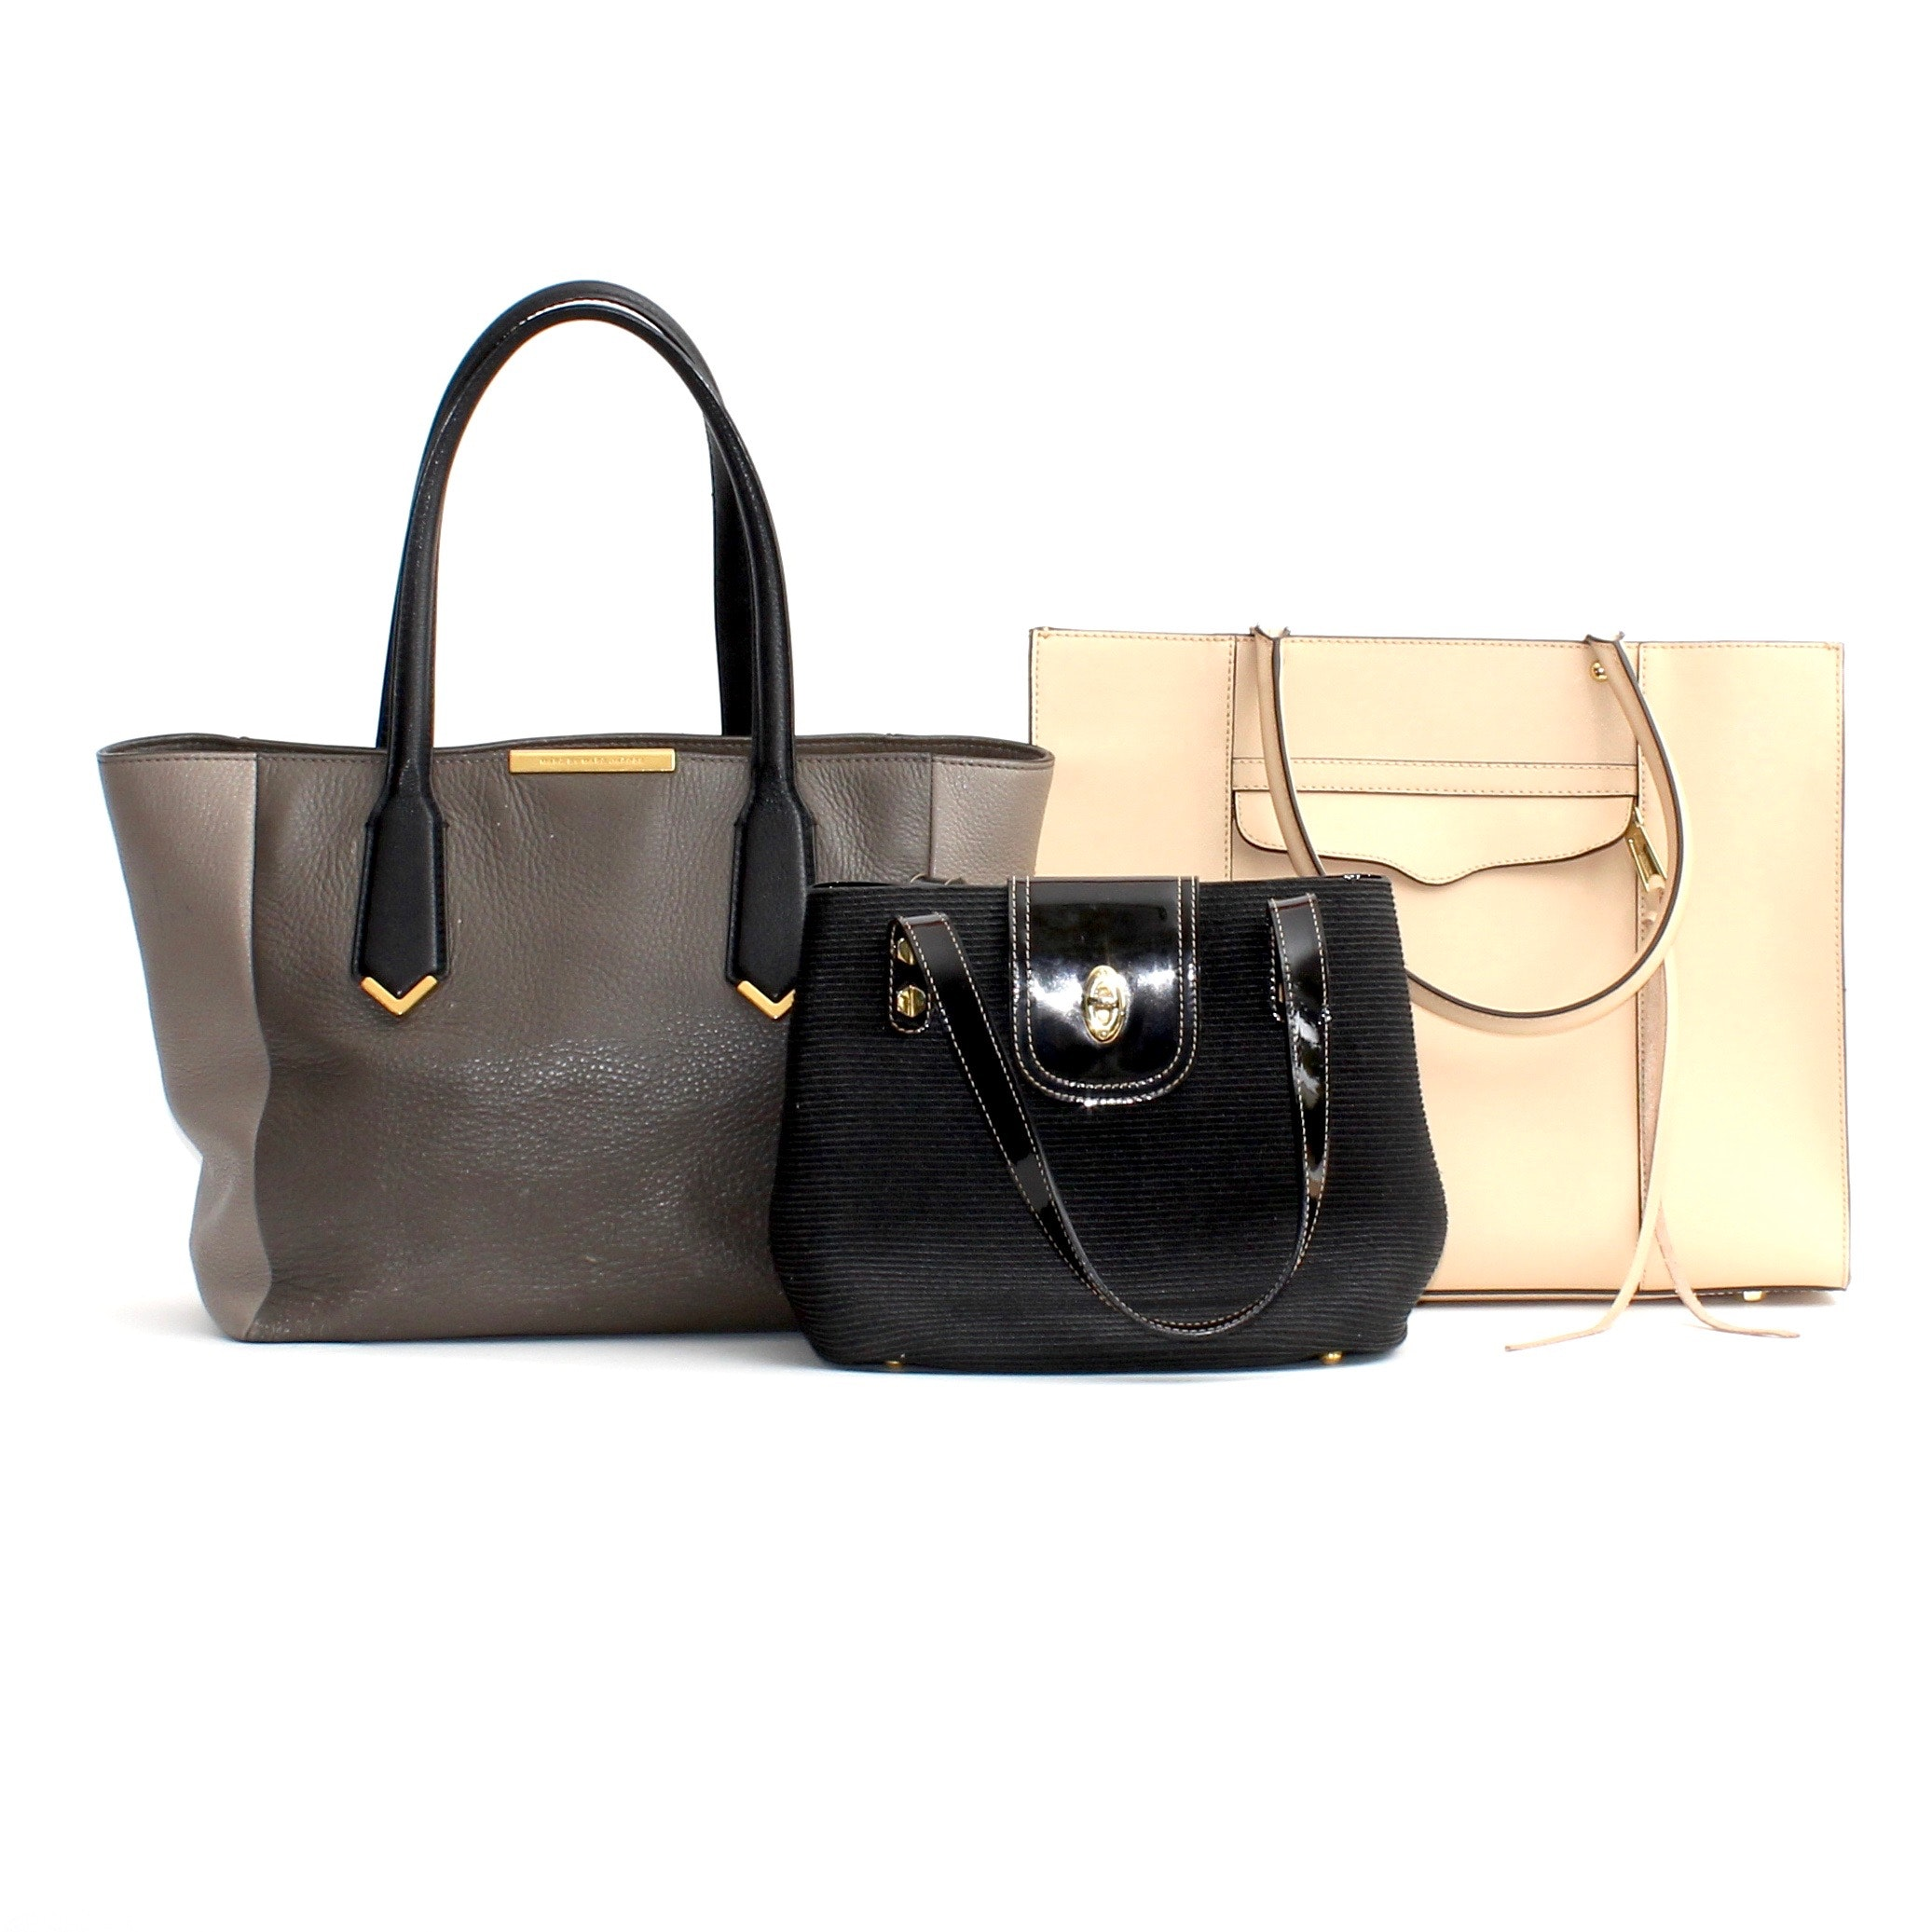 Handbags Including Marc Jacobs, Rebecca Minkoff And Eric Javits